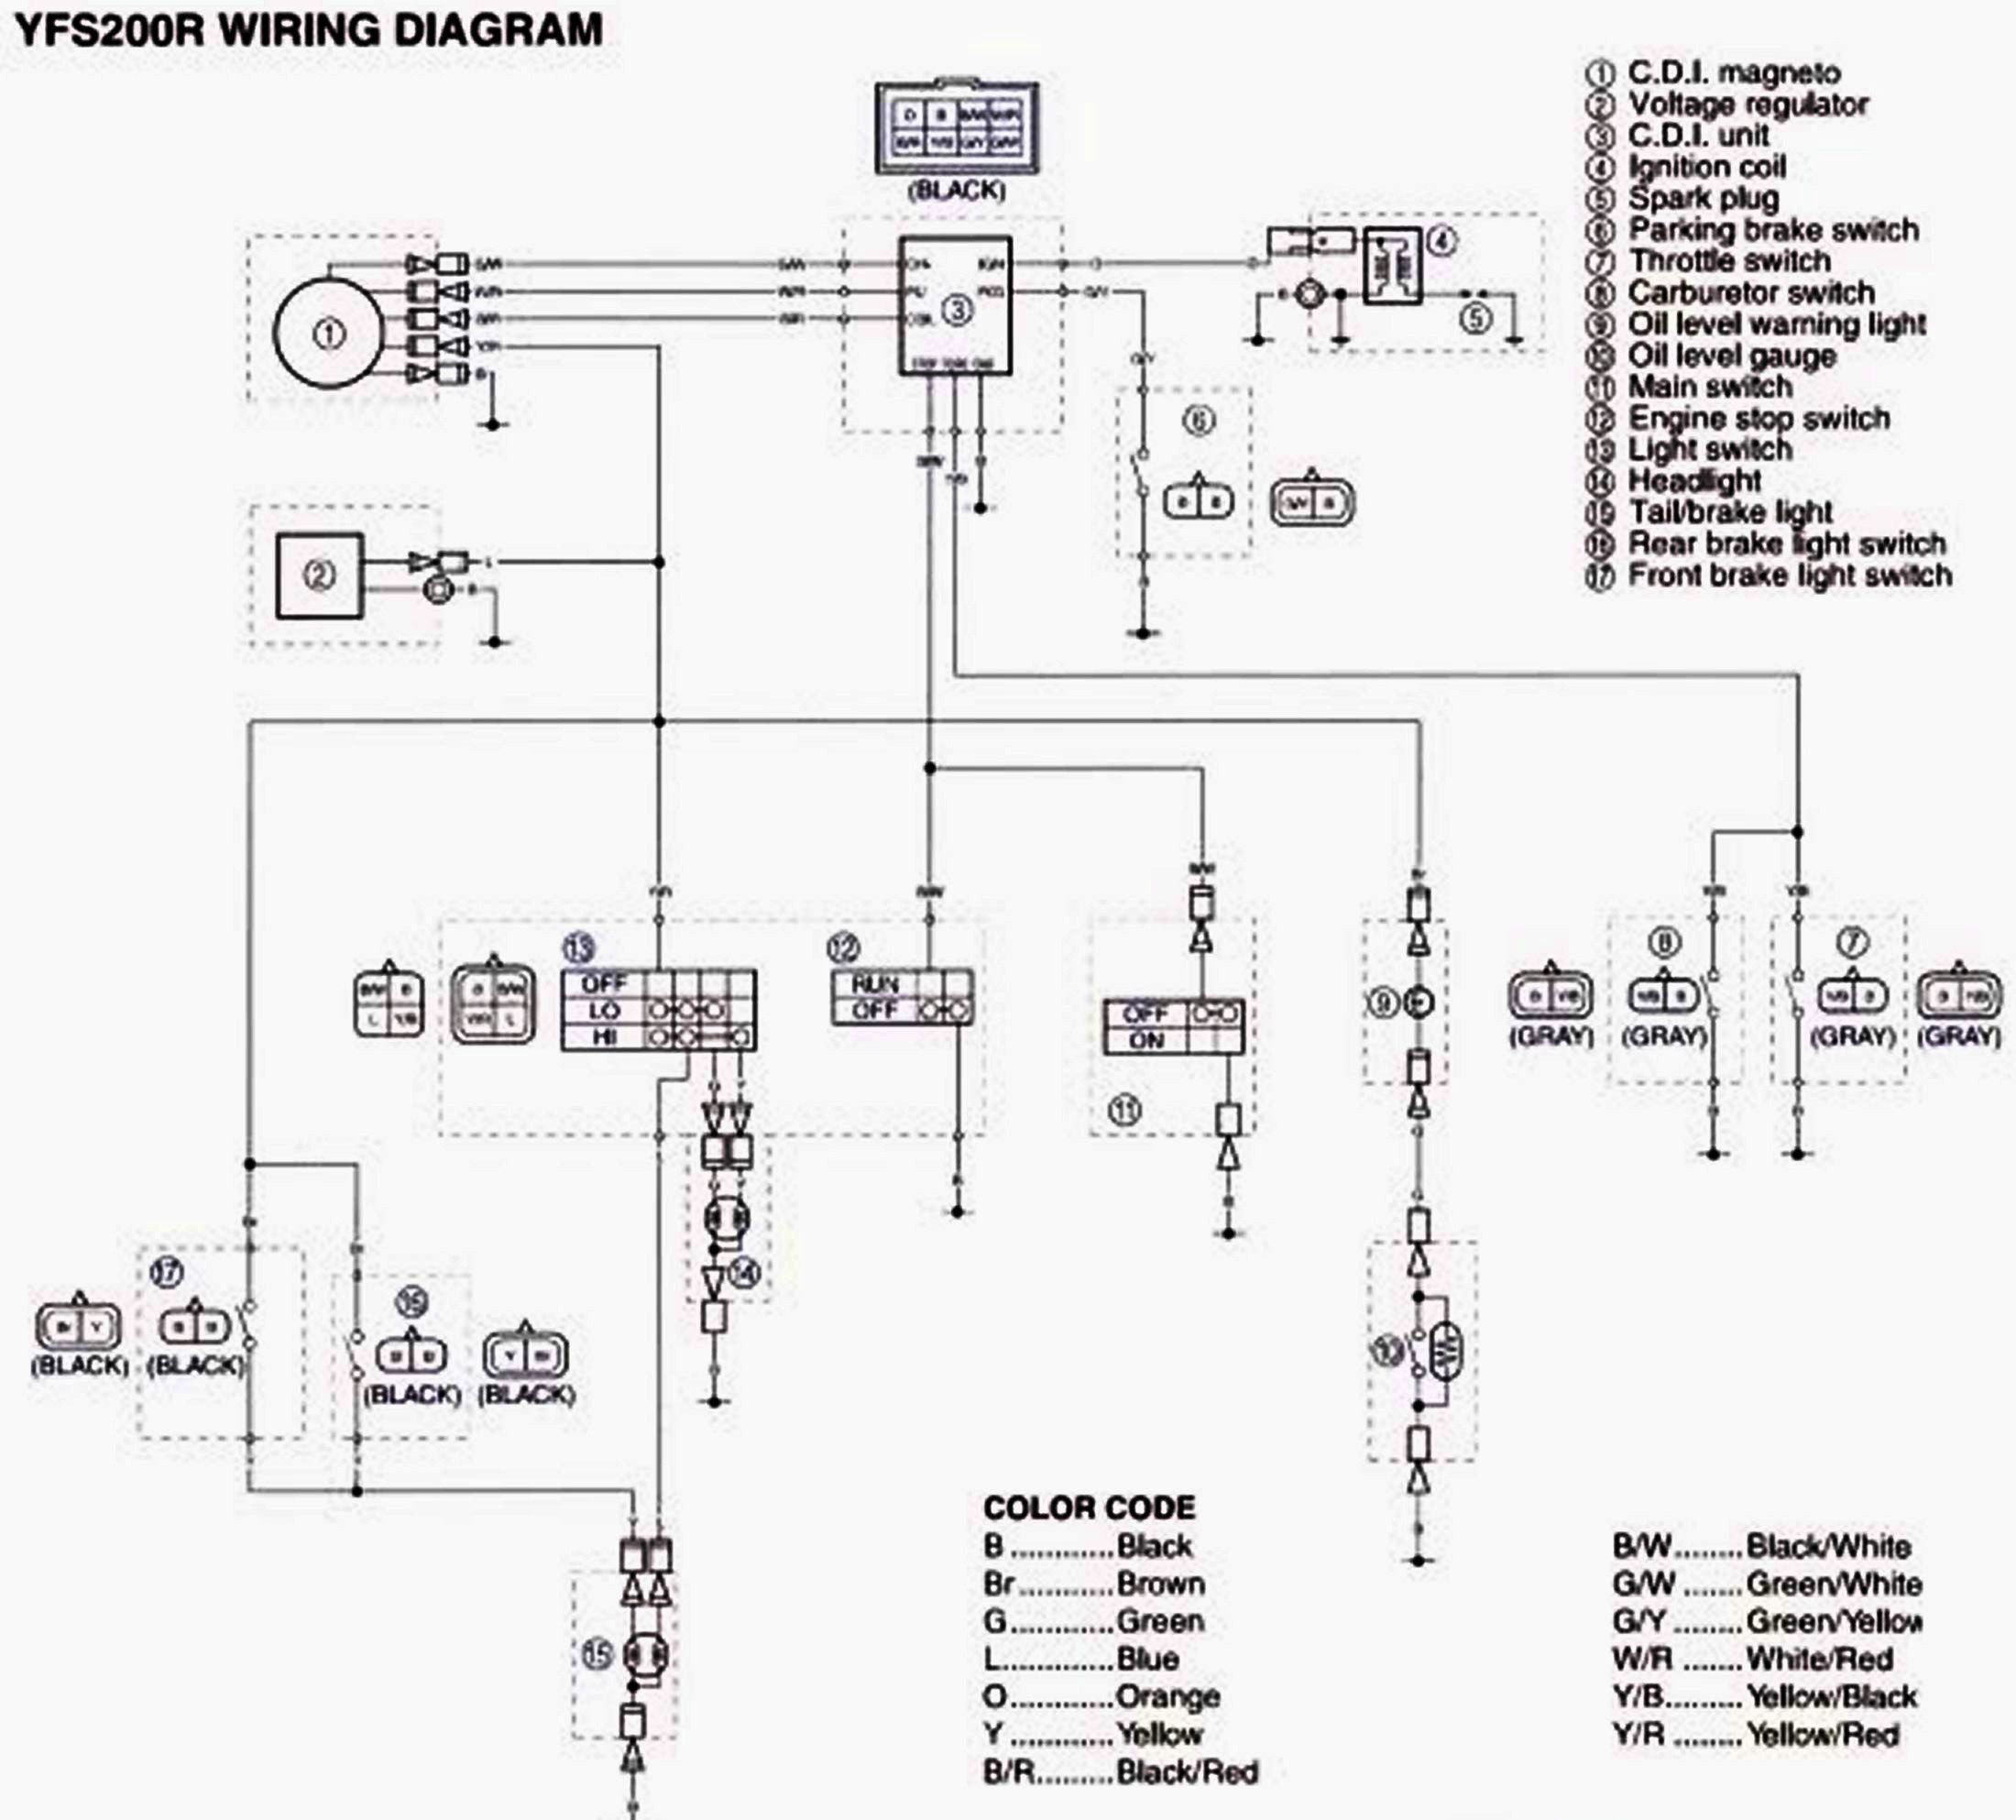 yamaha blaster wiring diagram yamaha banshee wiring diagram \u2022 free 2003 yamaha kodiak 400 wiring diagram at panicattacktreatment.co